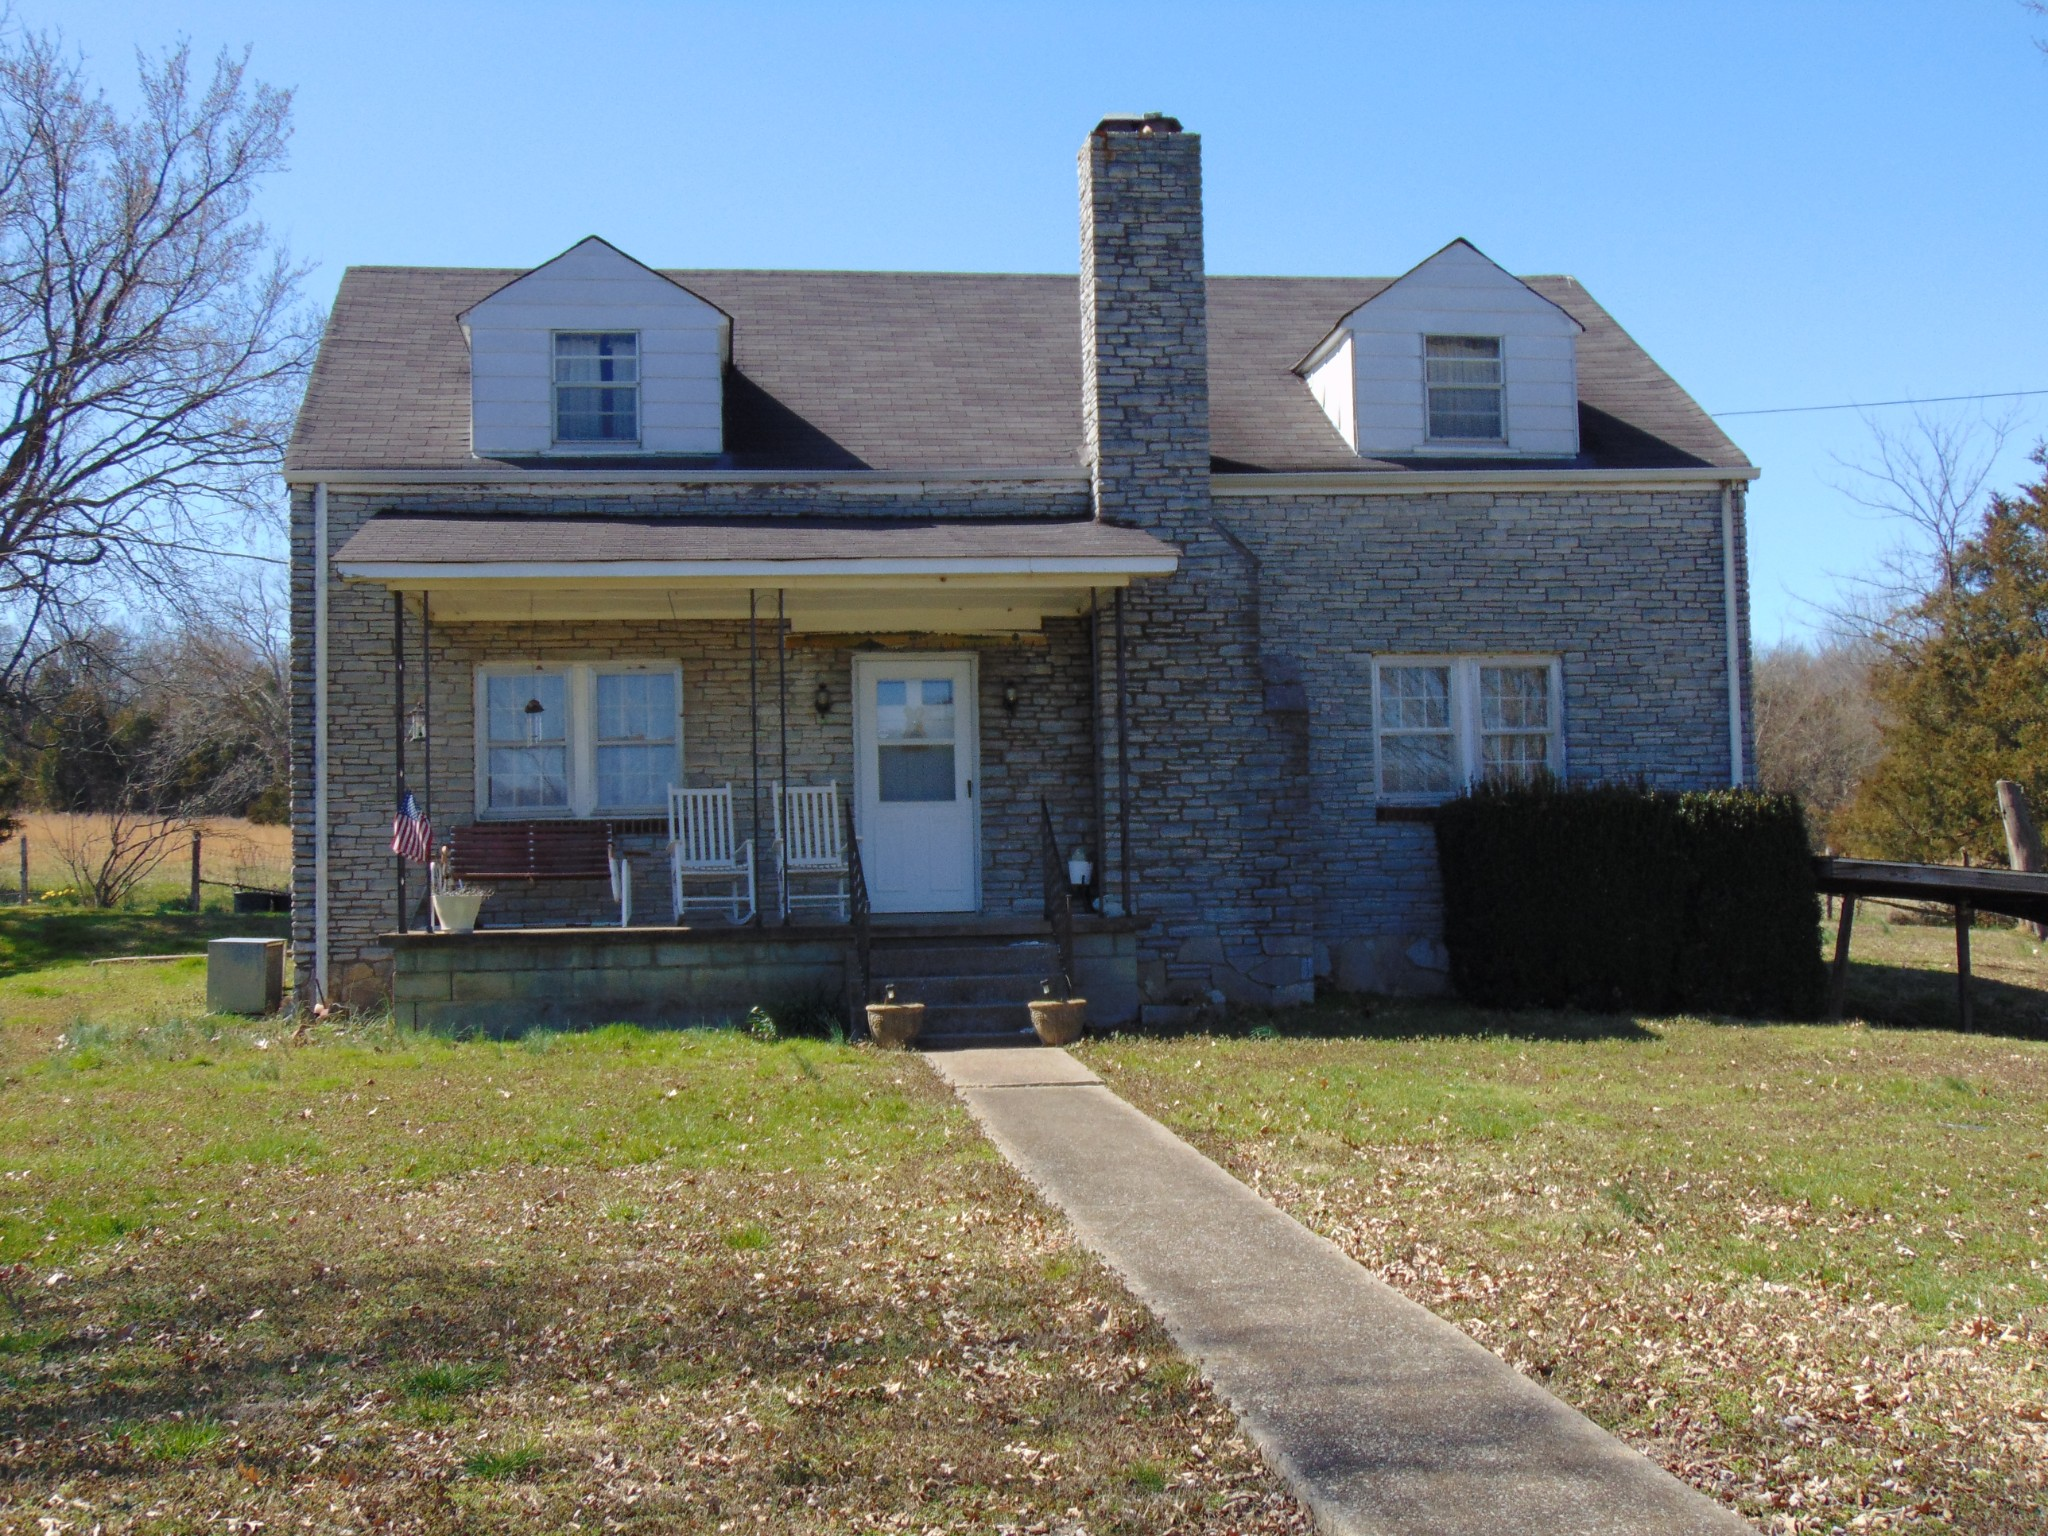 1491 Springplace Rd, Lewisburg, TN 37091 - Lewisburg, TN real estate listing